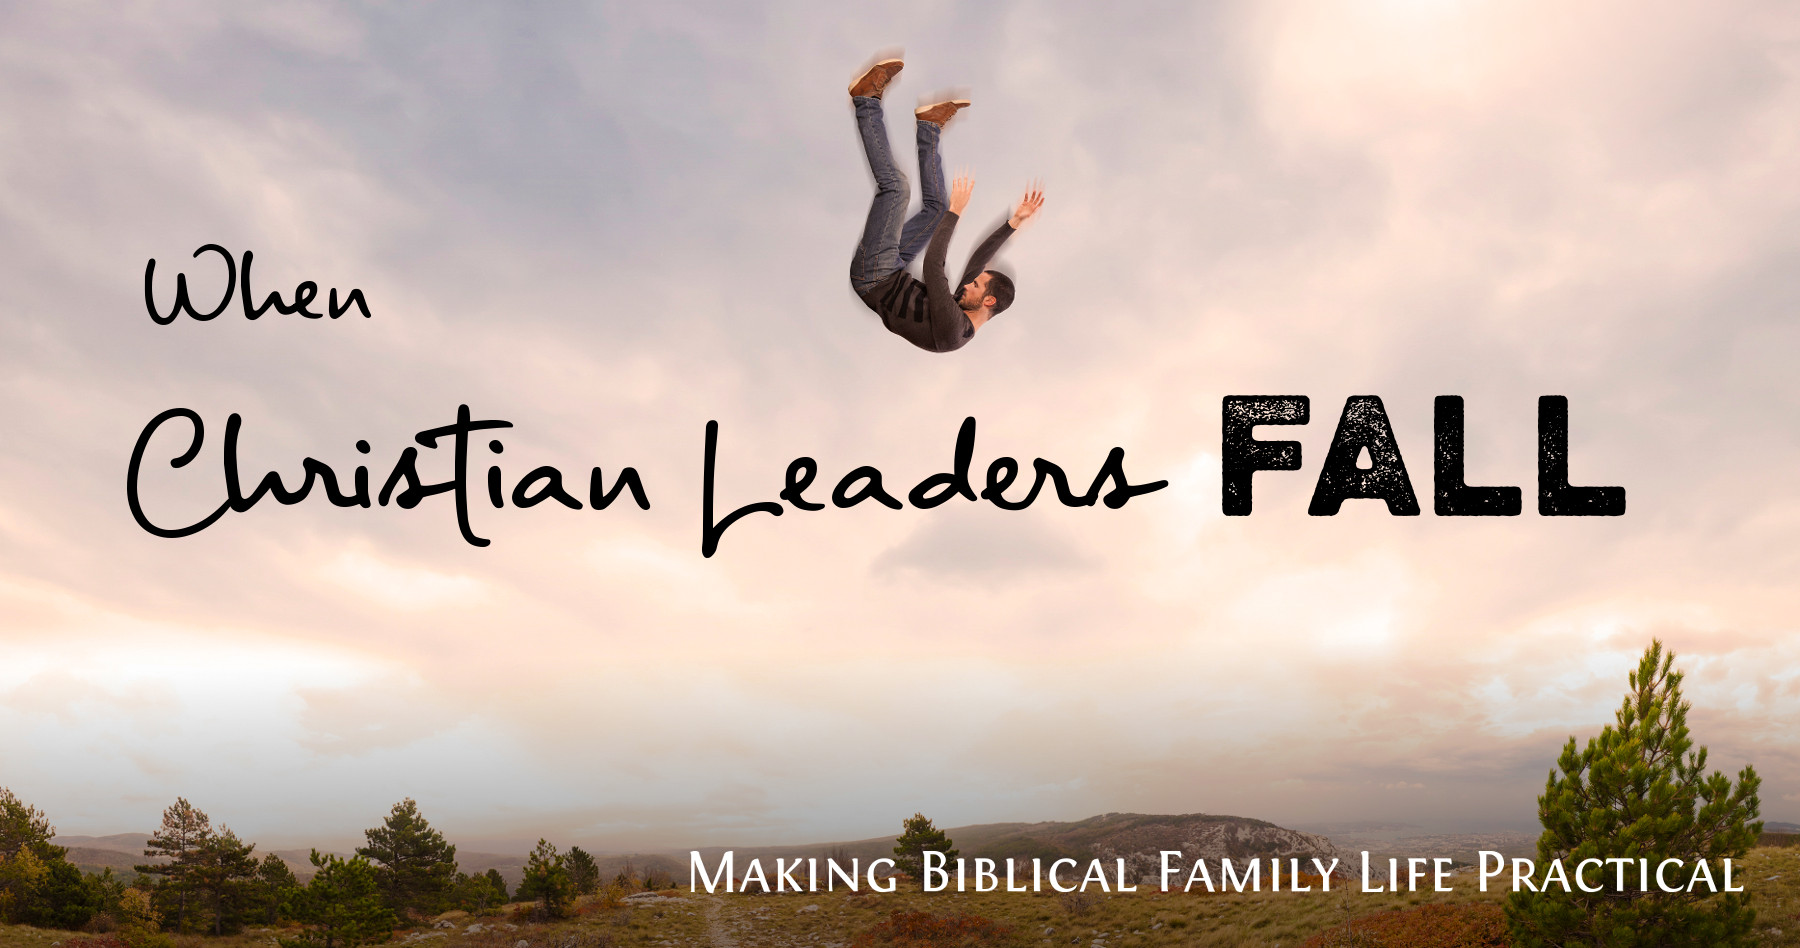 What do we do when Christian leaders fall?